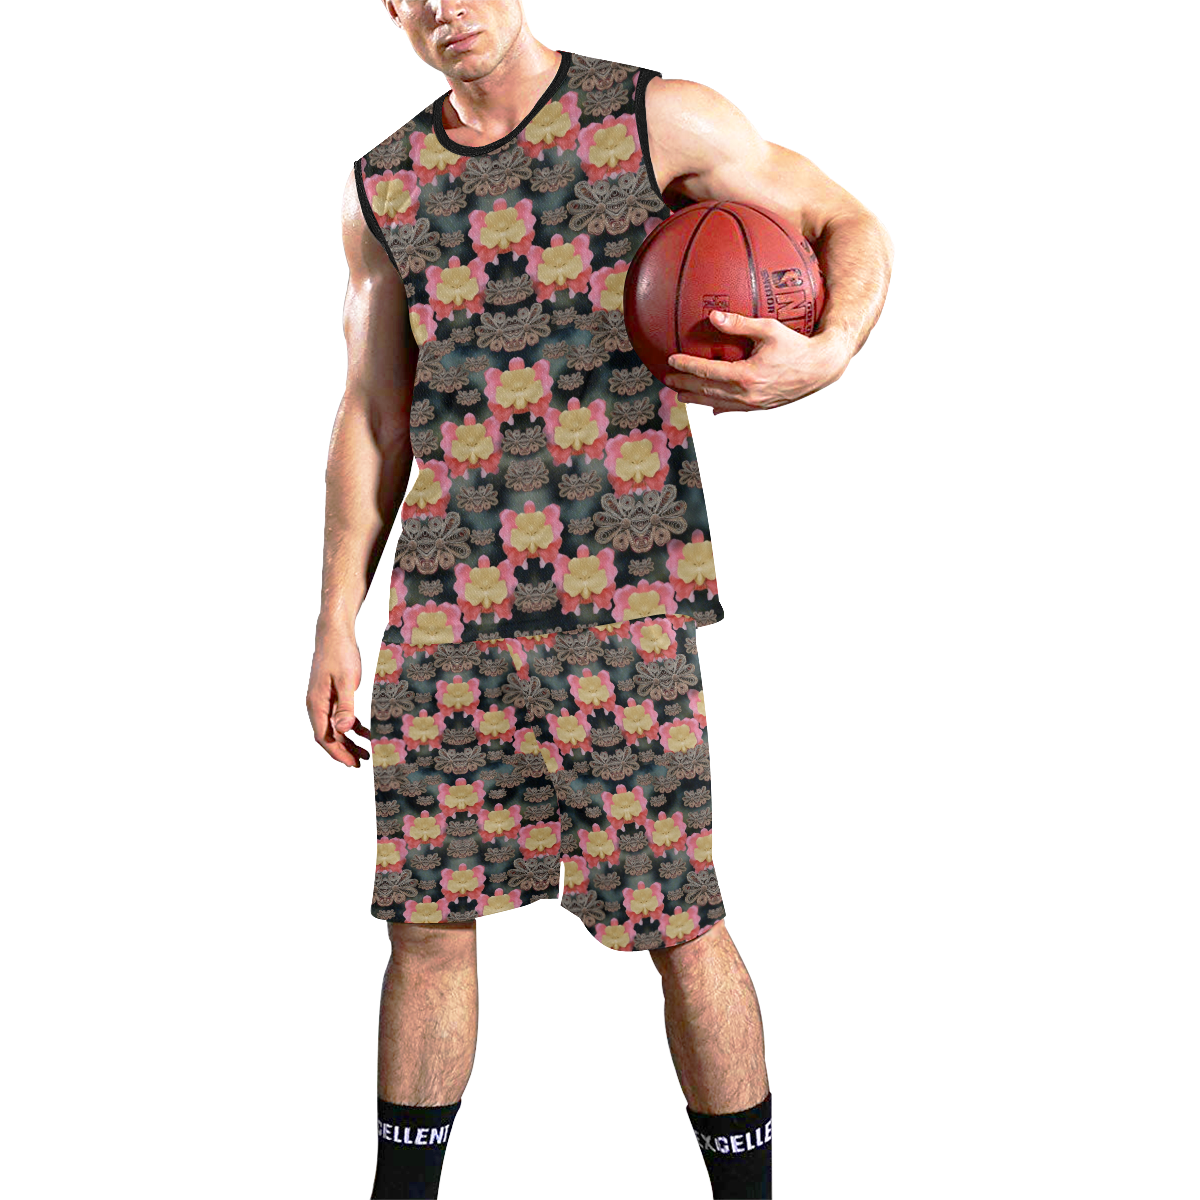 Heavy Metal meets power of the big flower All Over Print Basketball Uniform